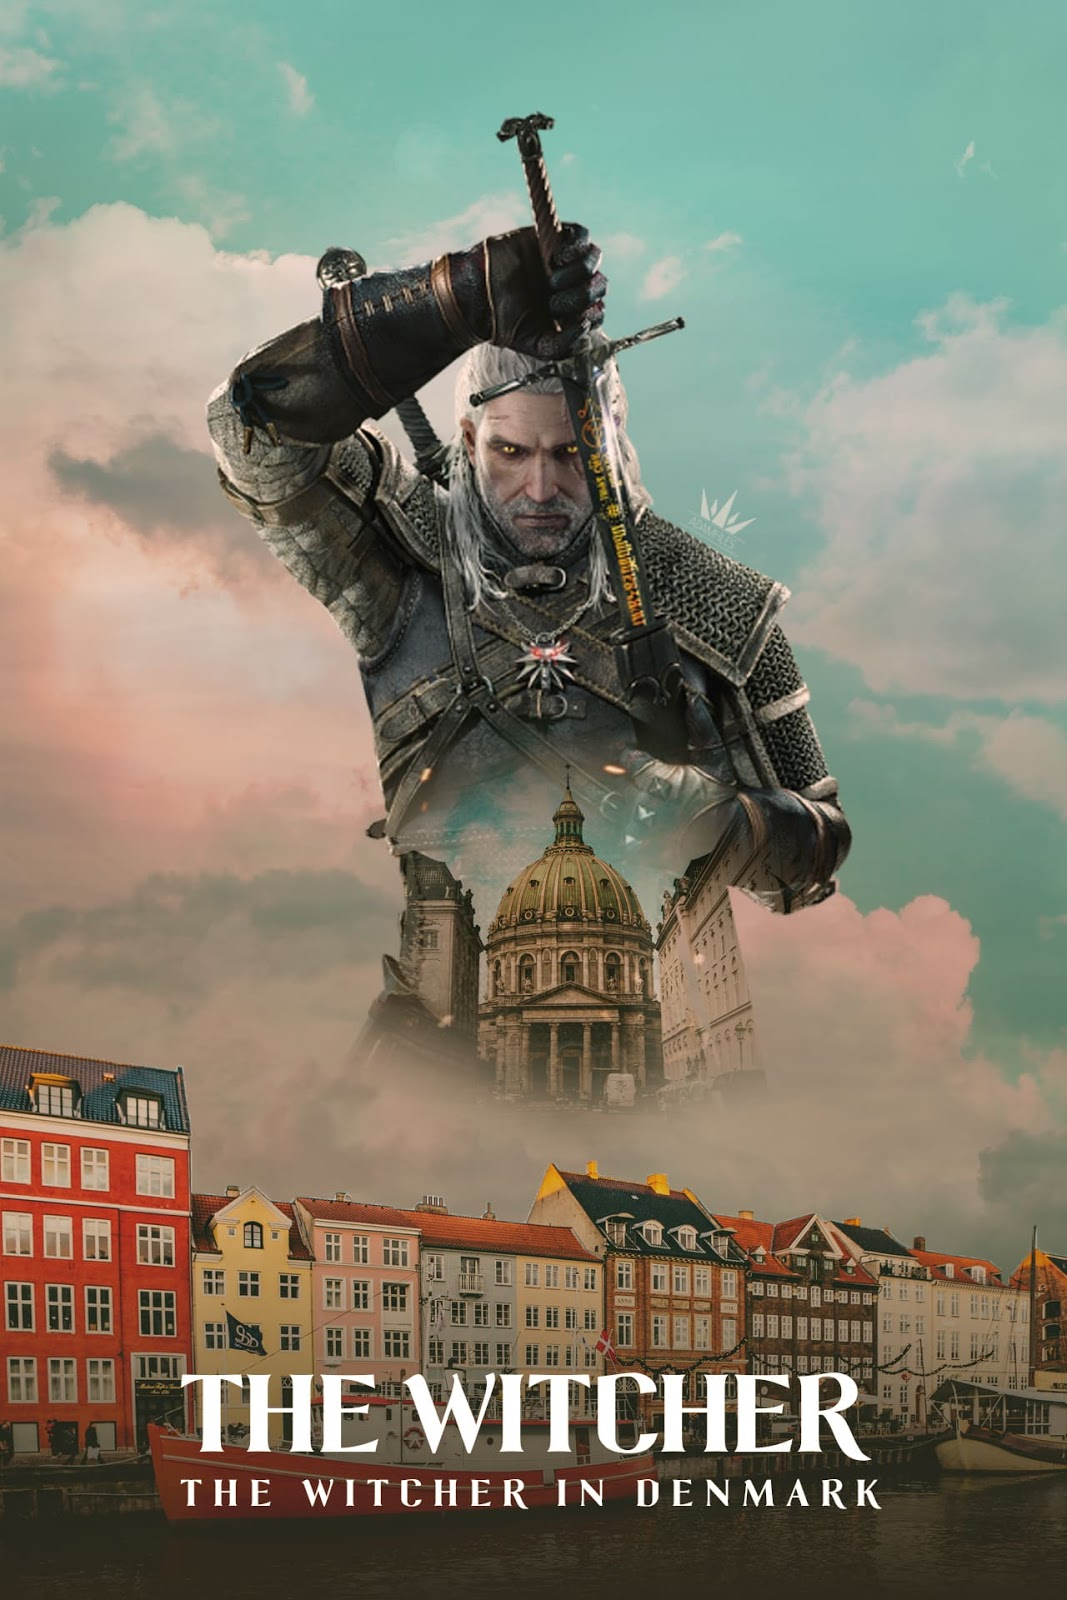 The Witcher in denmark